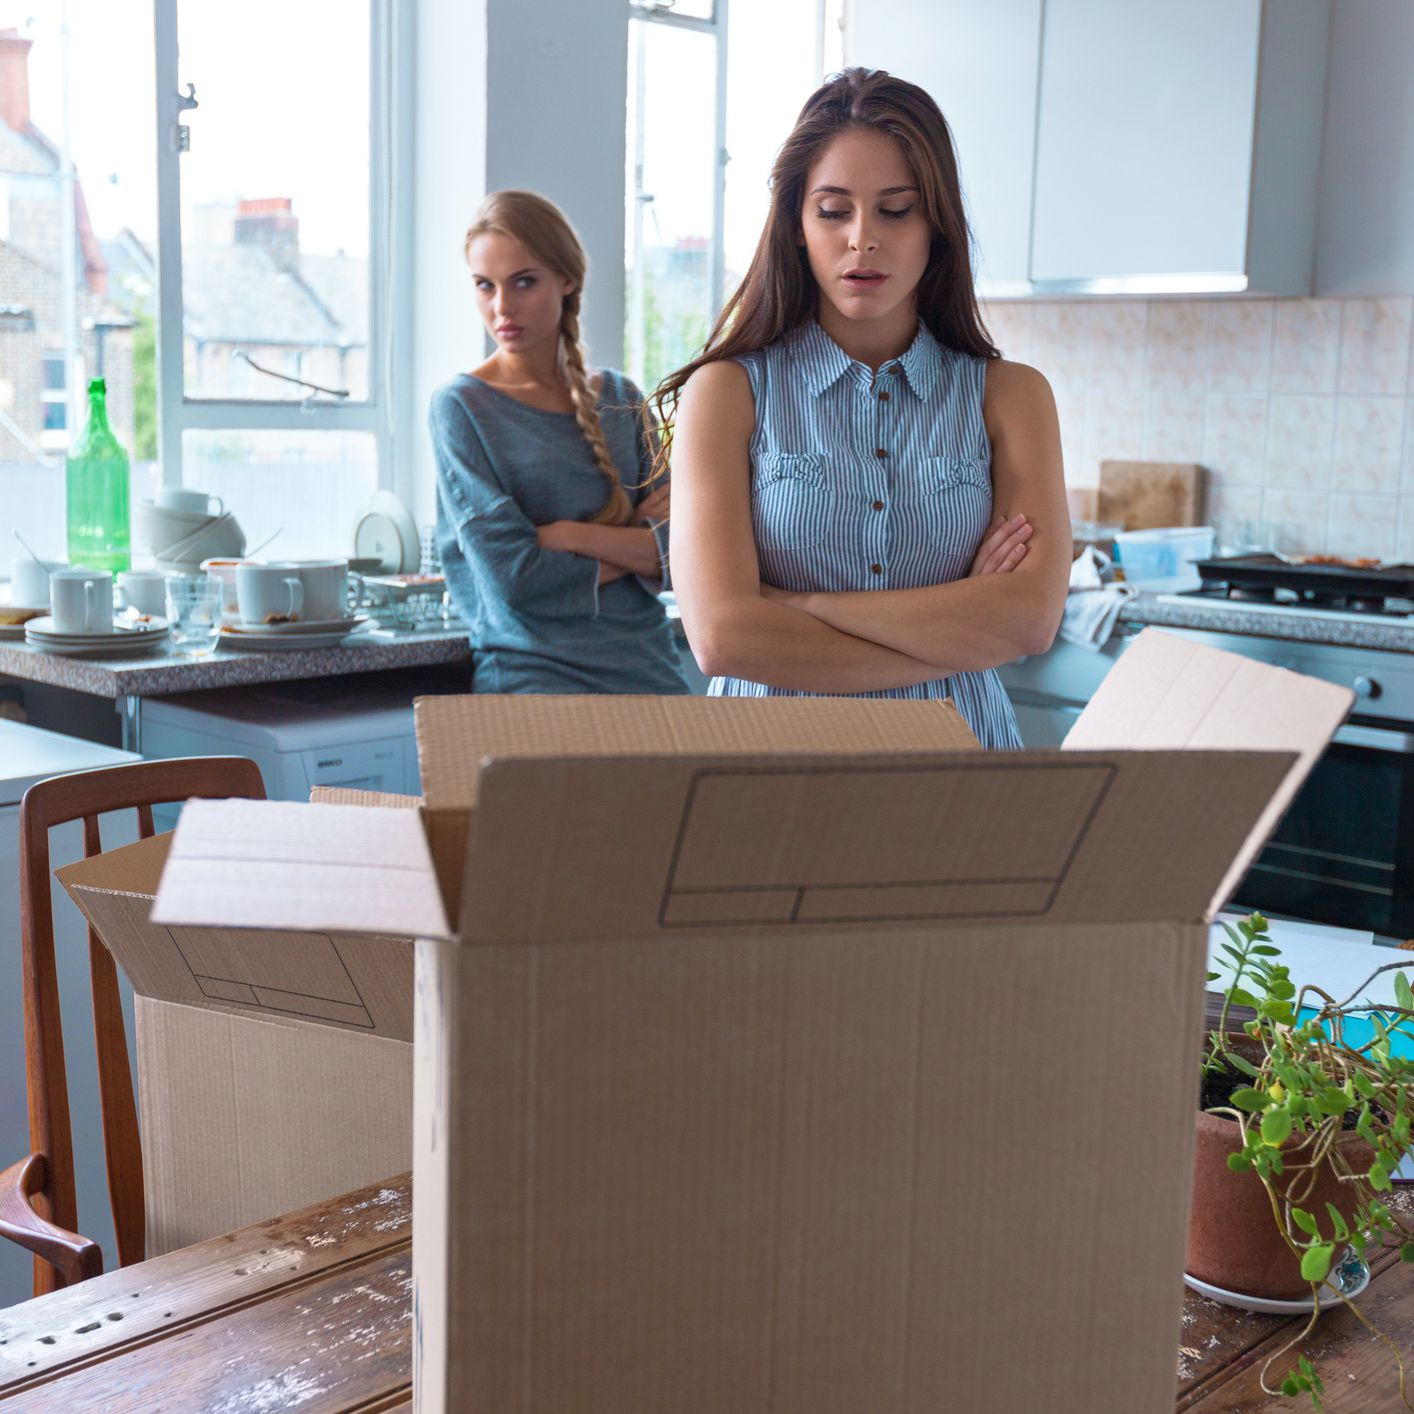 How to Evict a Roommate From Your Rental